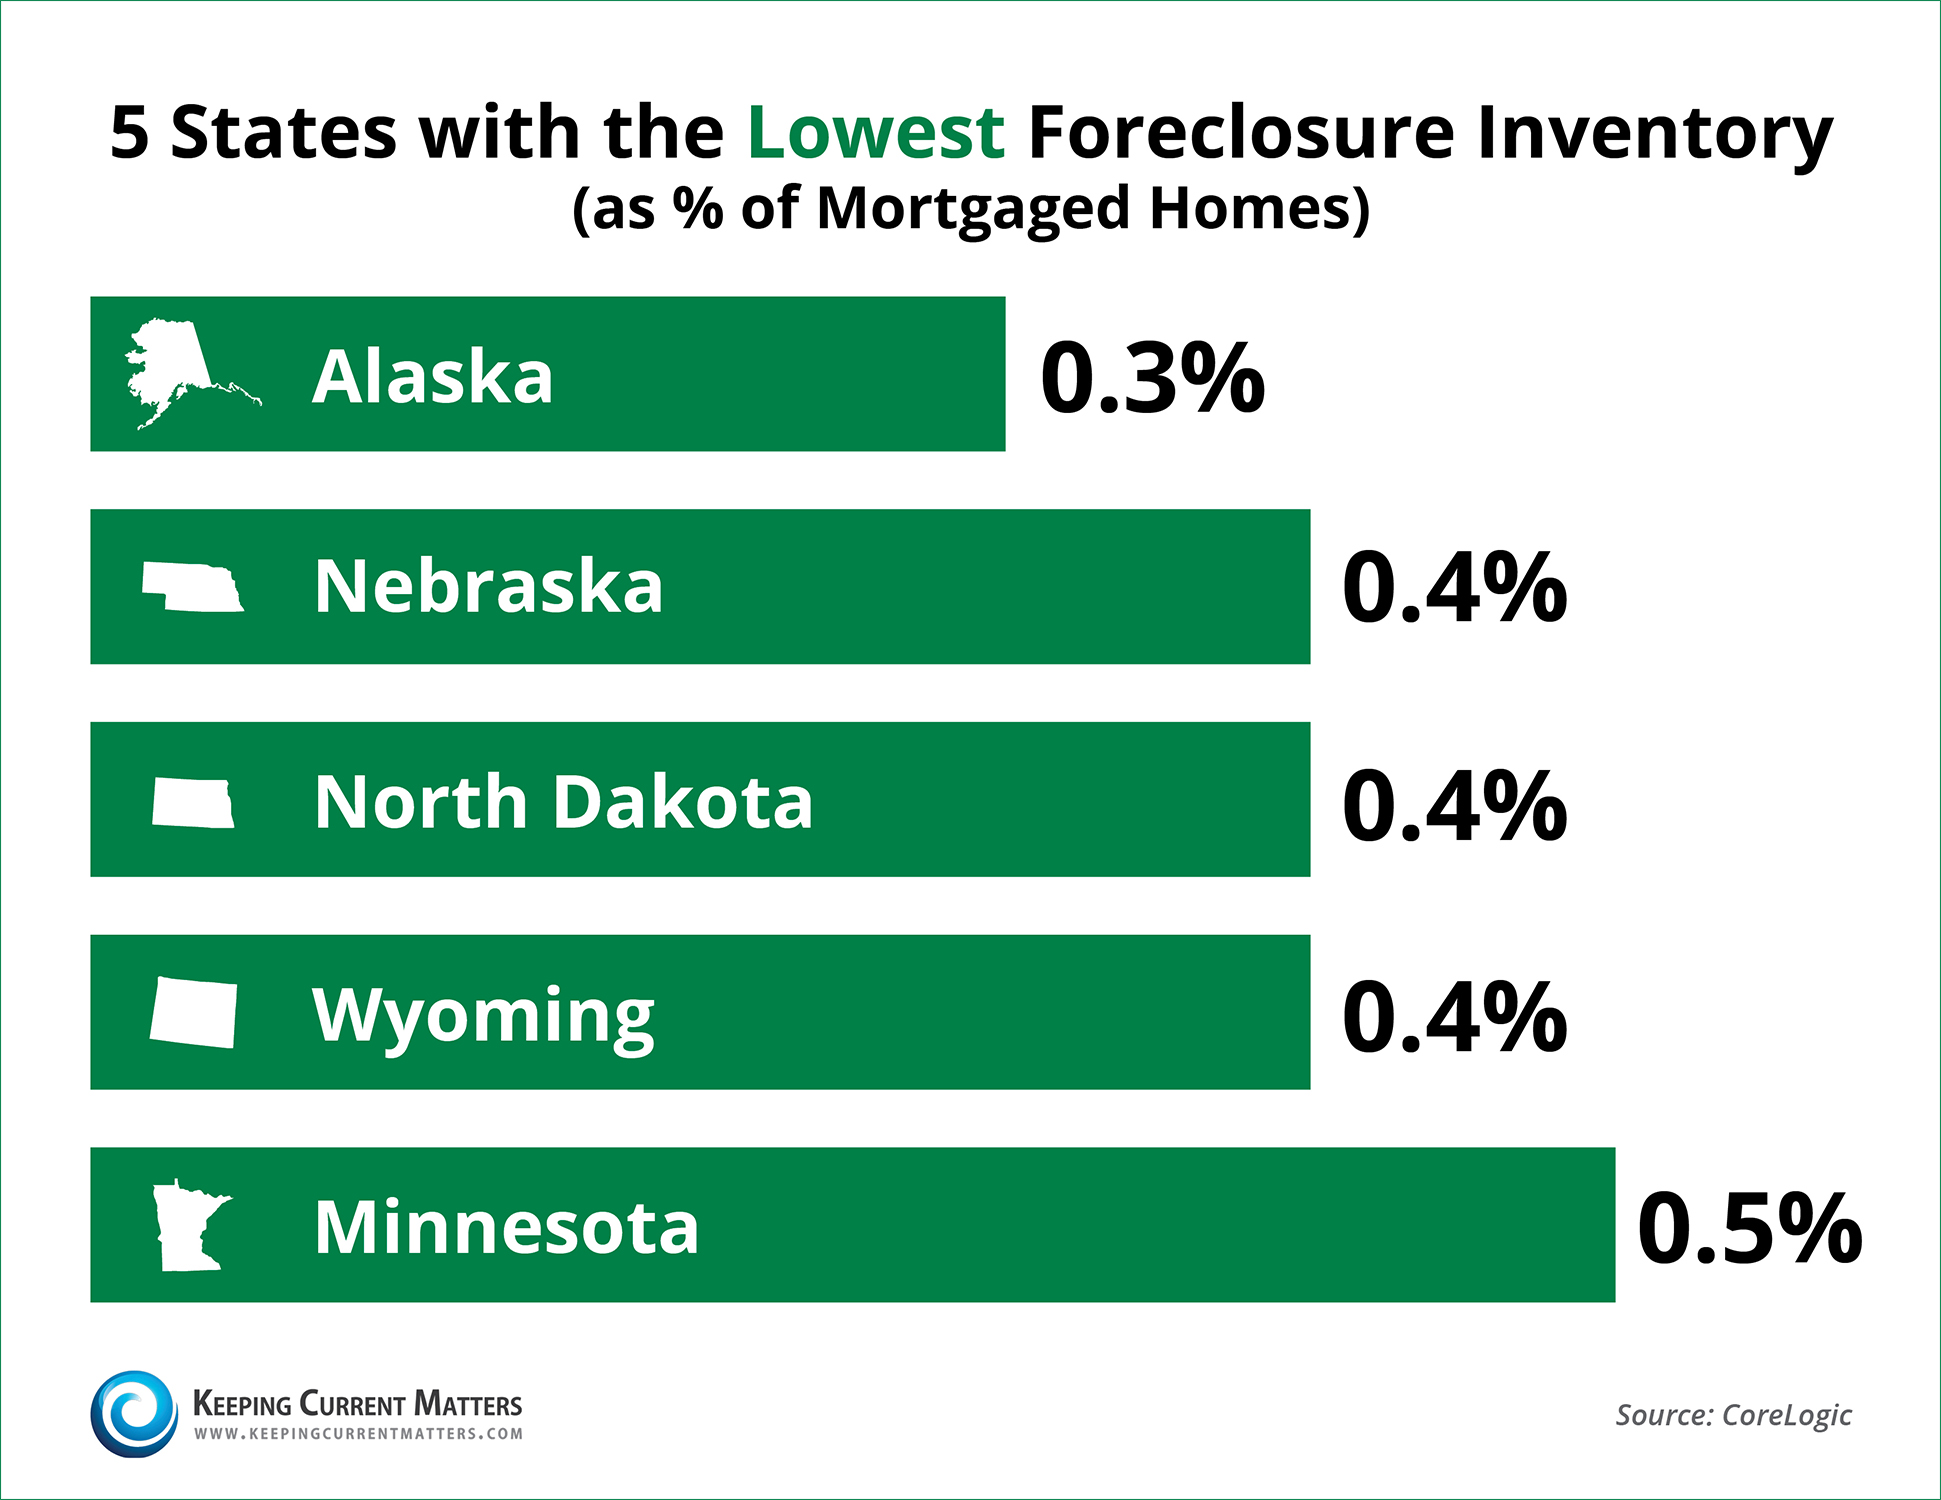 CoreLogic Foreclosure Report Lowest 5 States | Keeping Current Matters